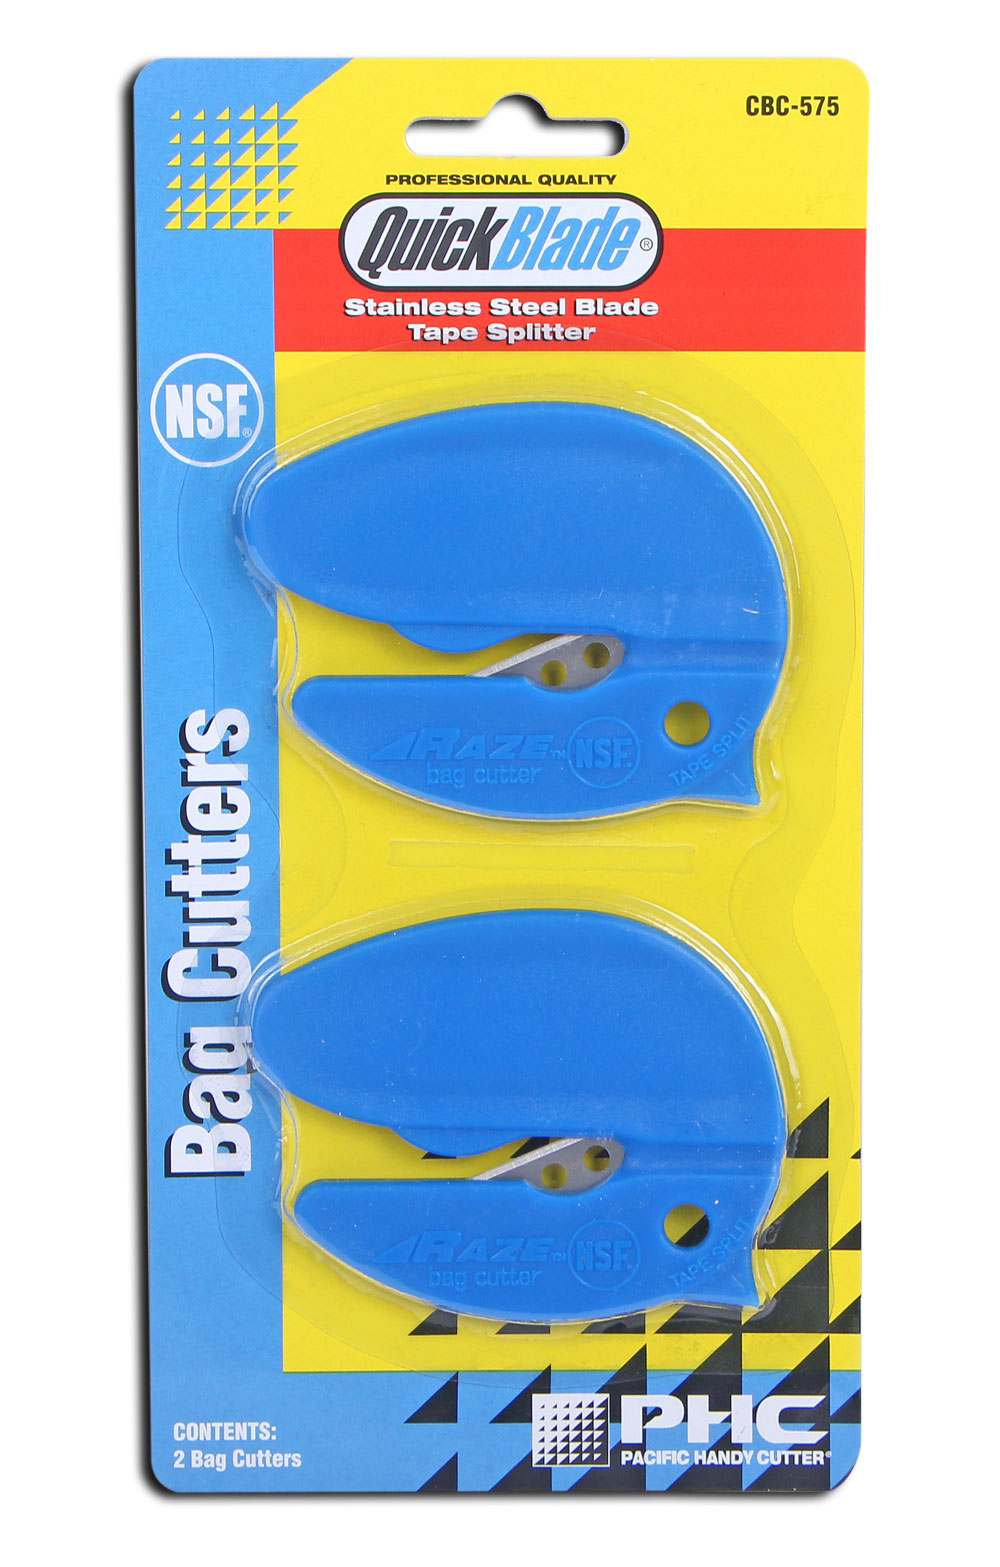 NSF SAFETY BAG CUTTER  - CBC-575